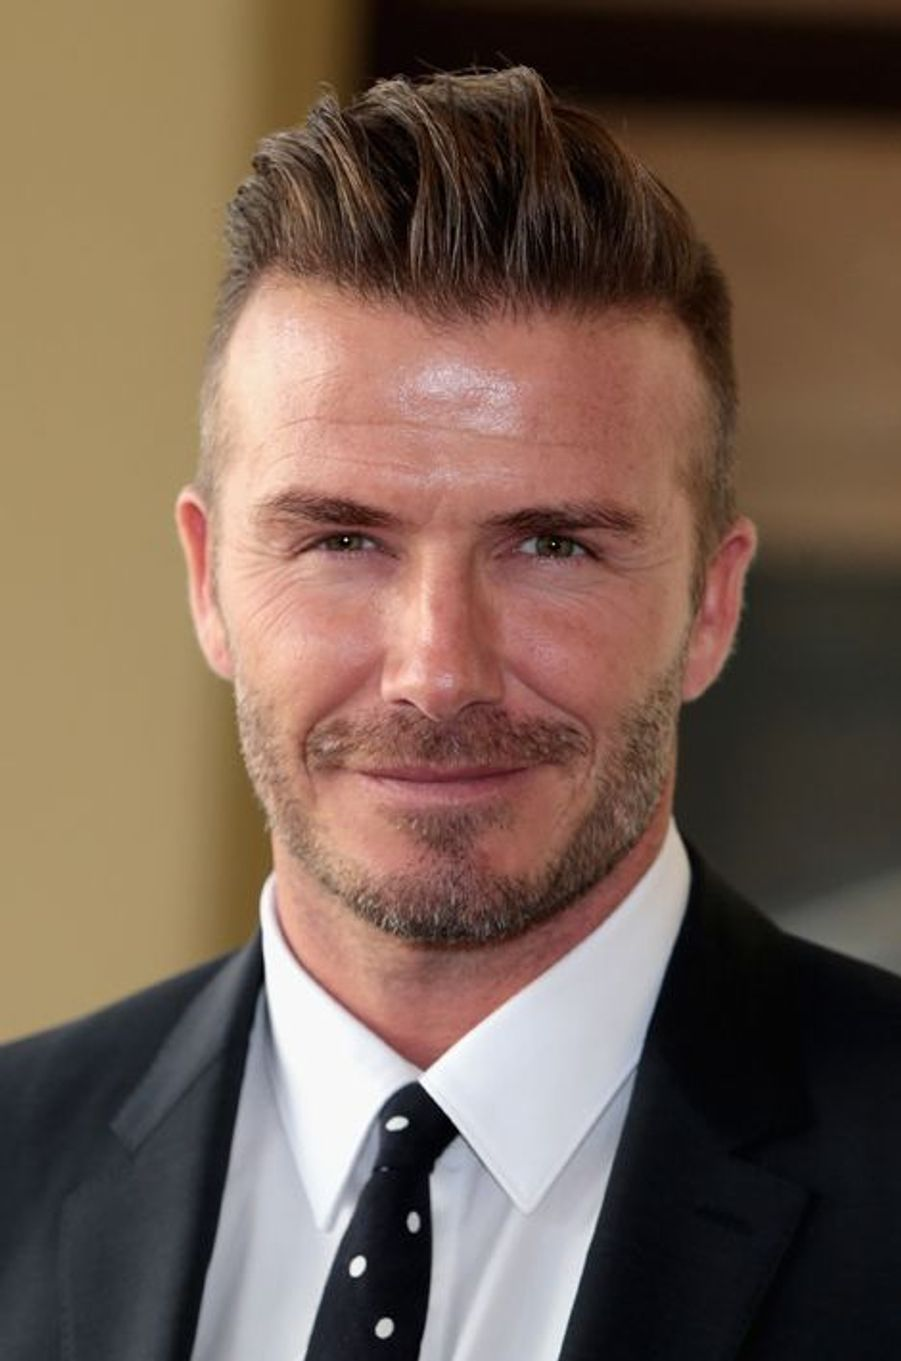 David Beckham à Buckingham Palace le 22 juin 2015